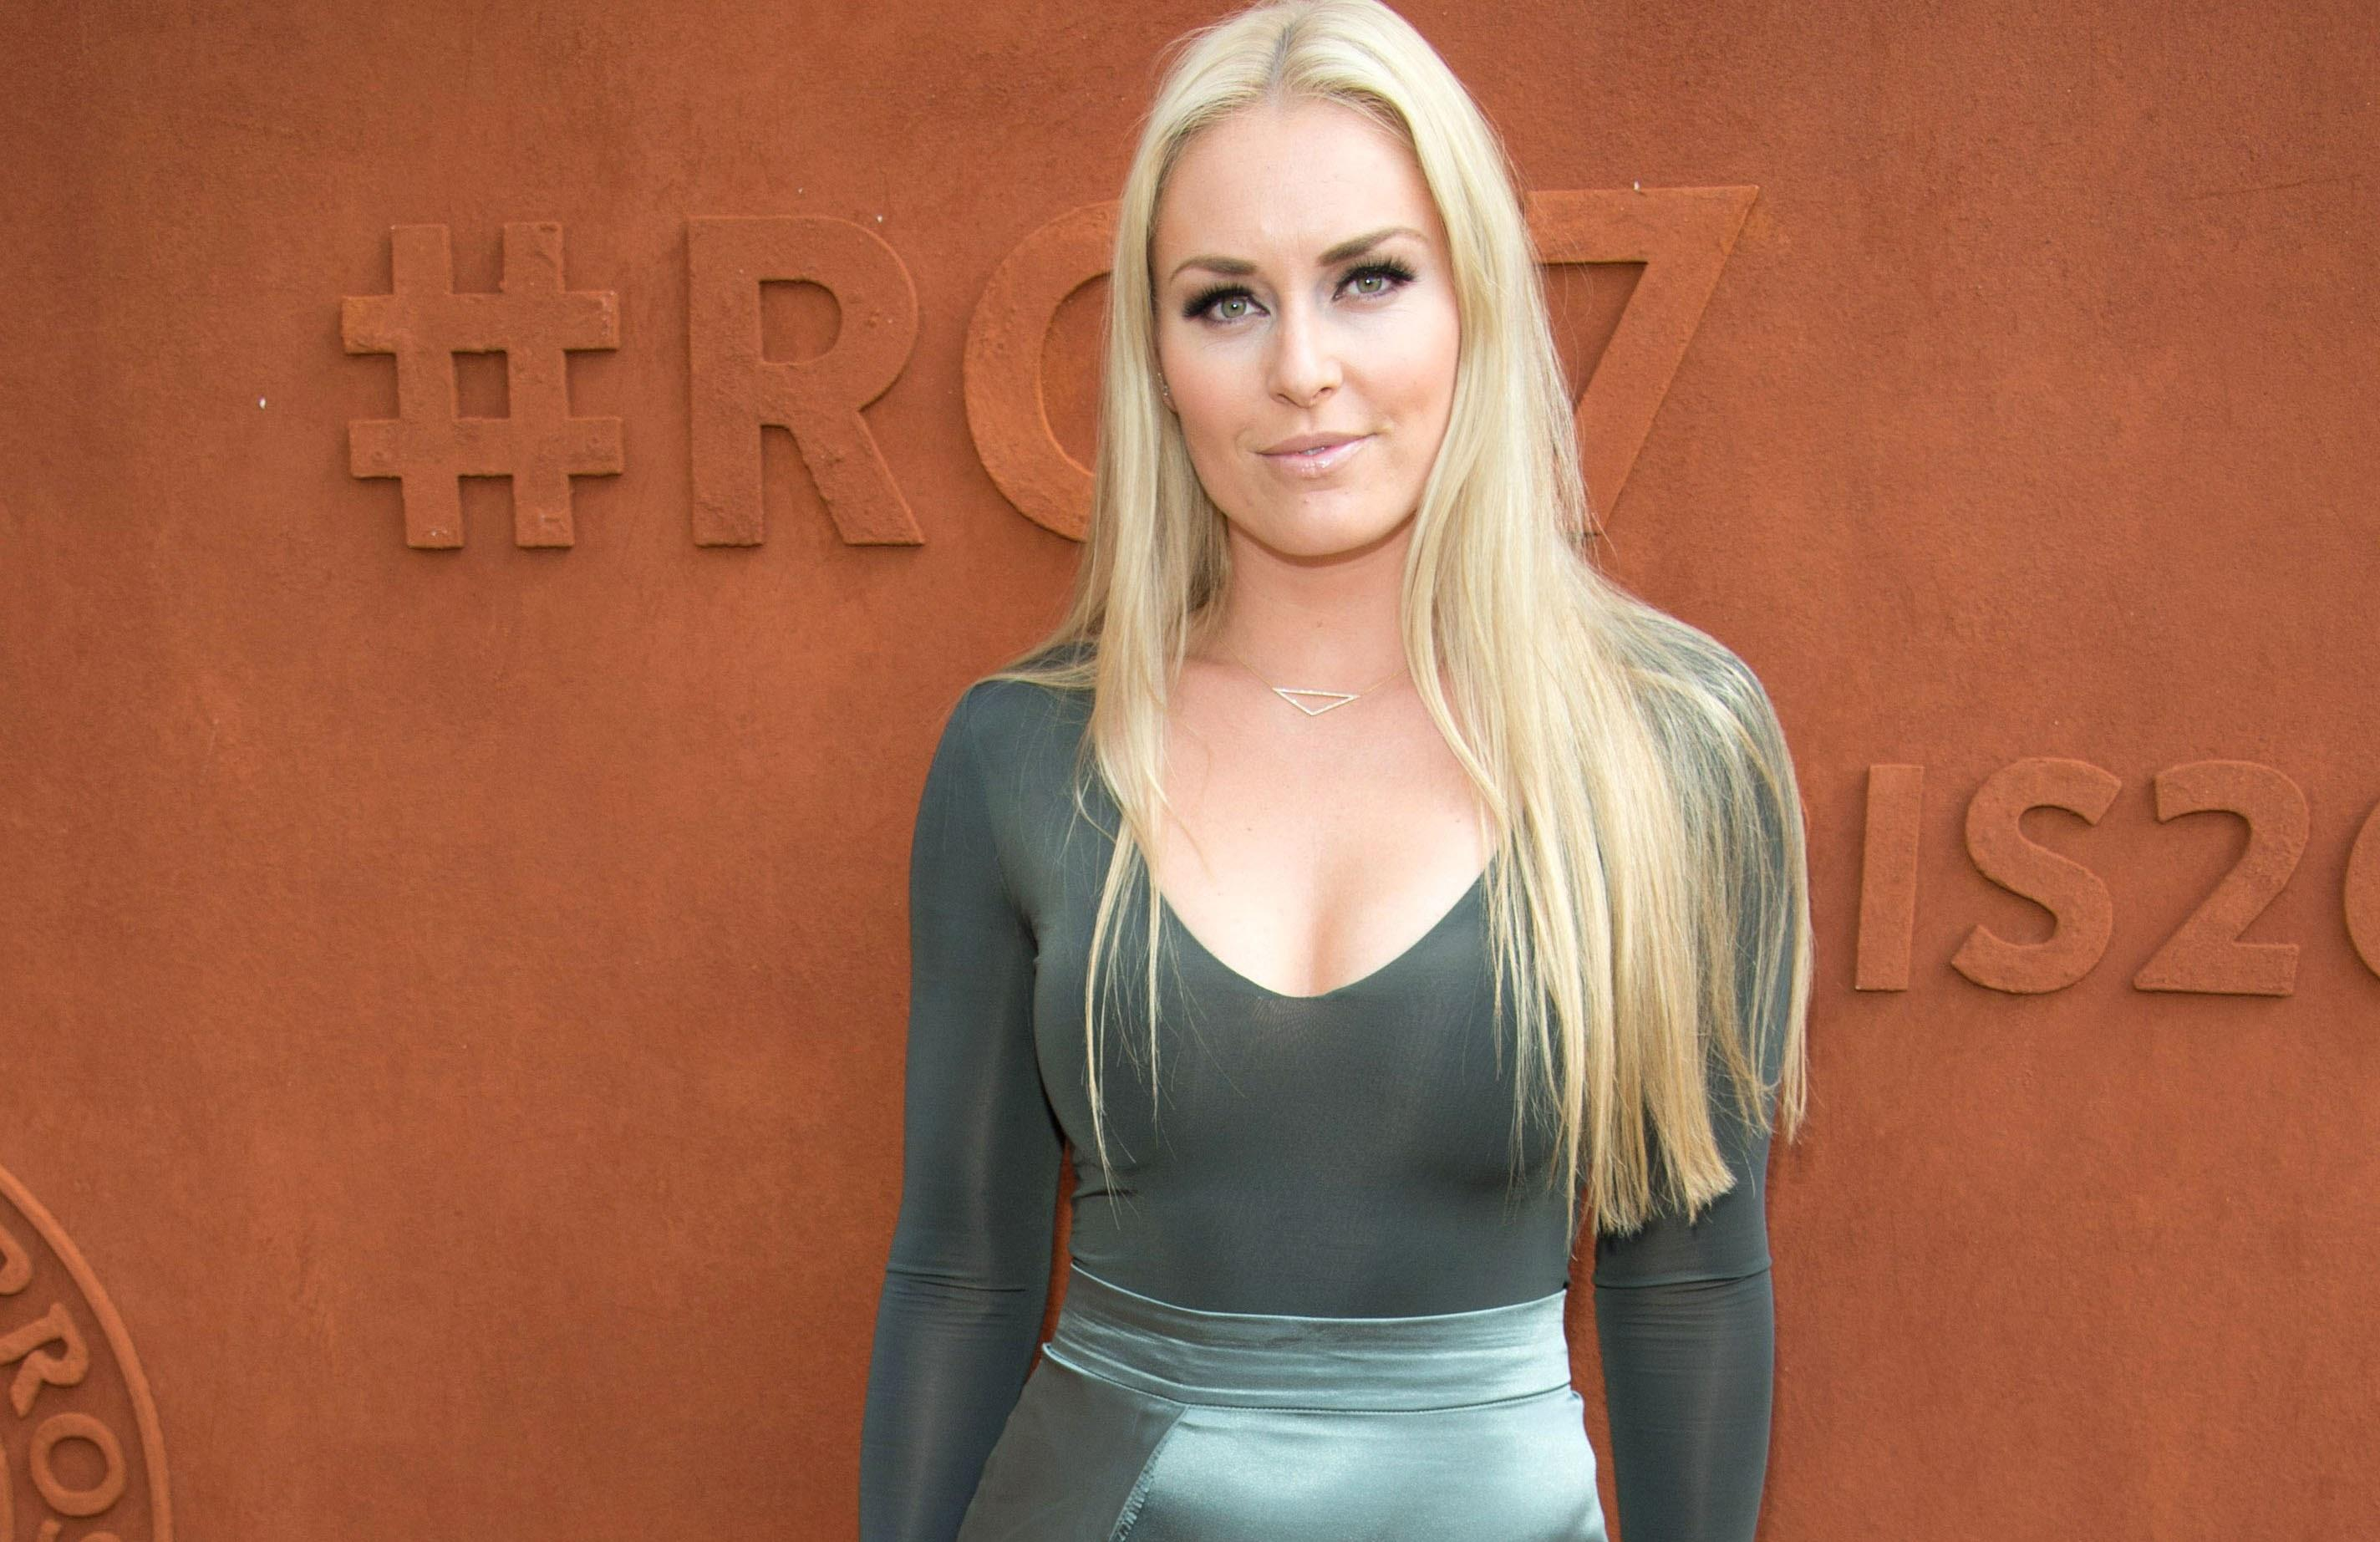 TheFappening Lindsey Vonn nude photos 2019